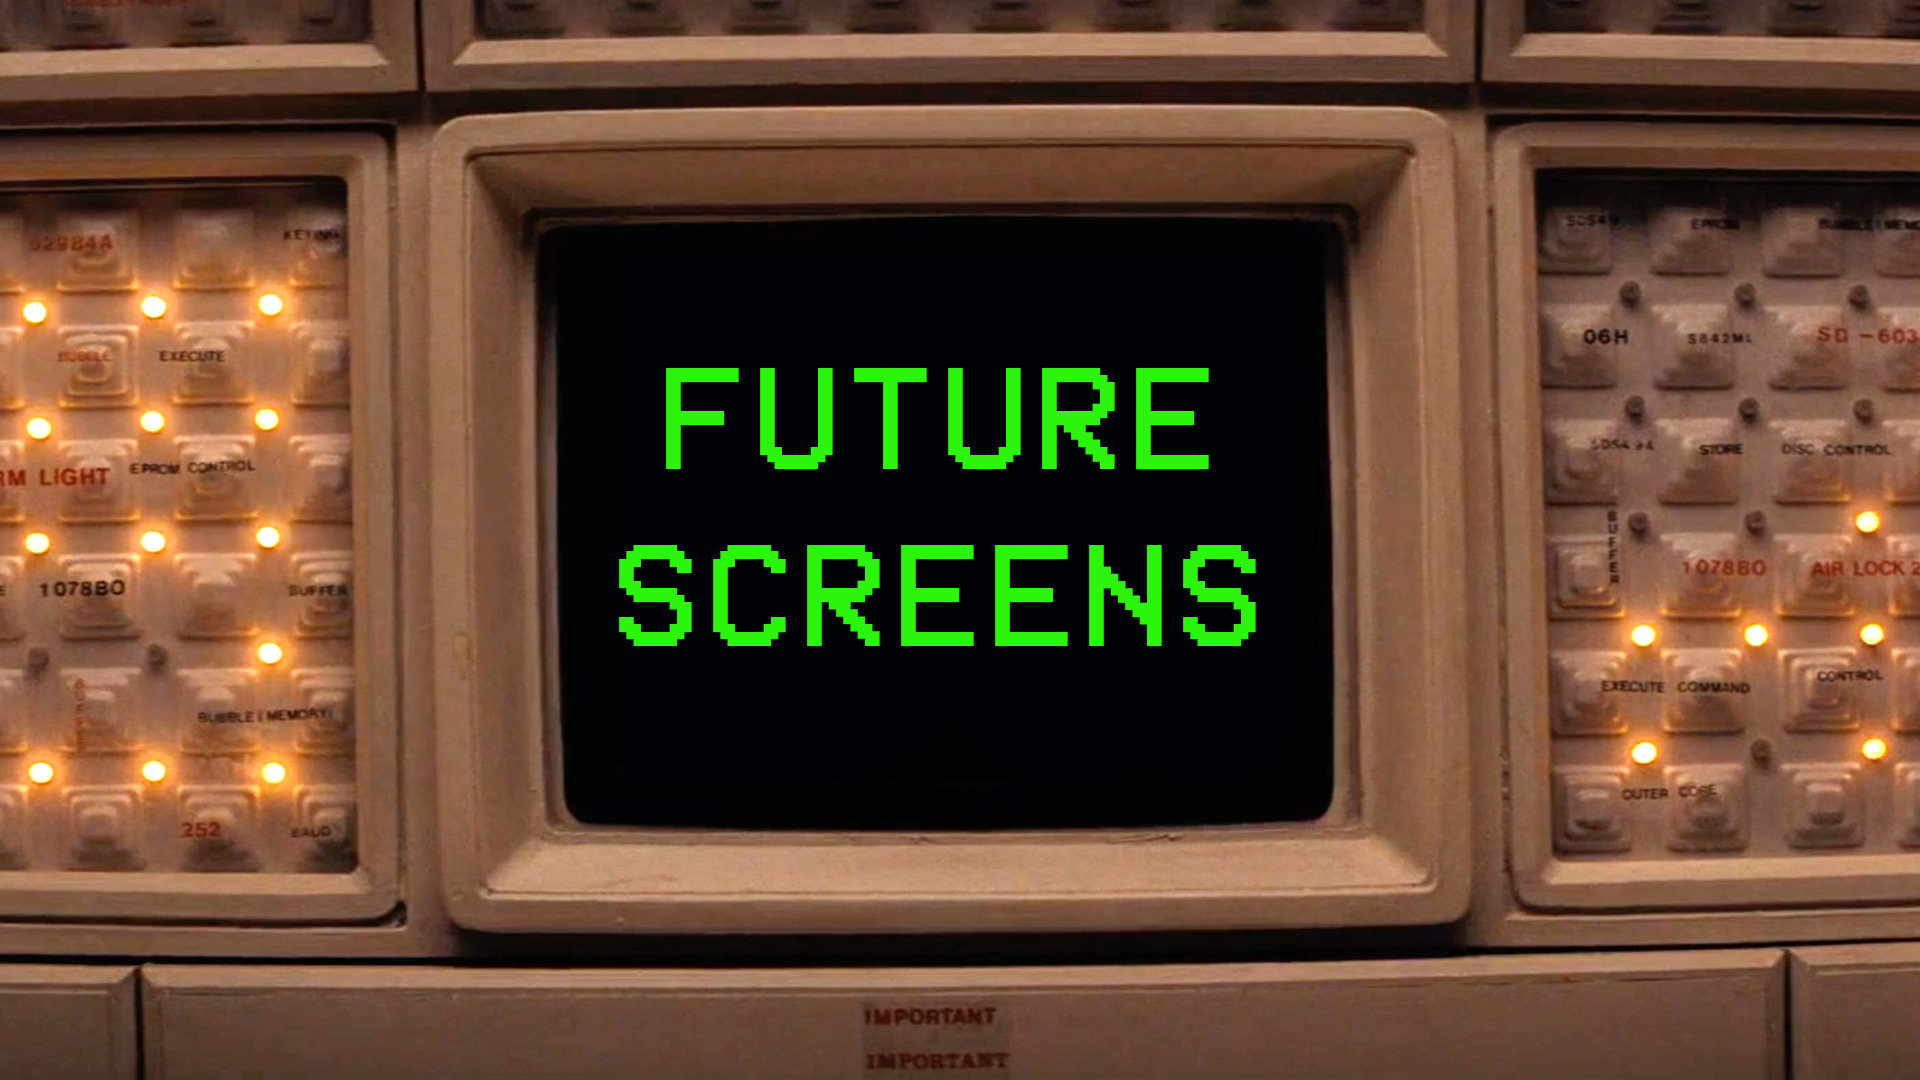 FUTURE-SCREENS